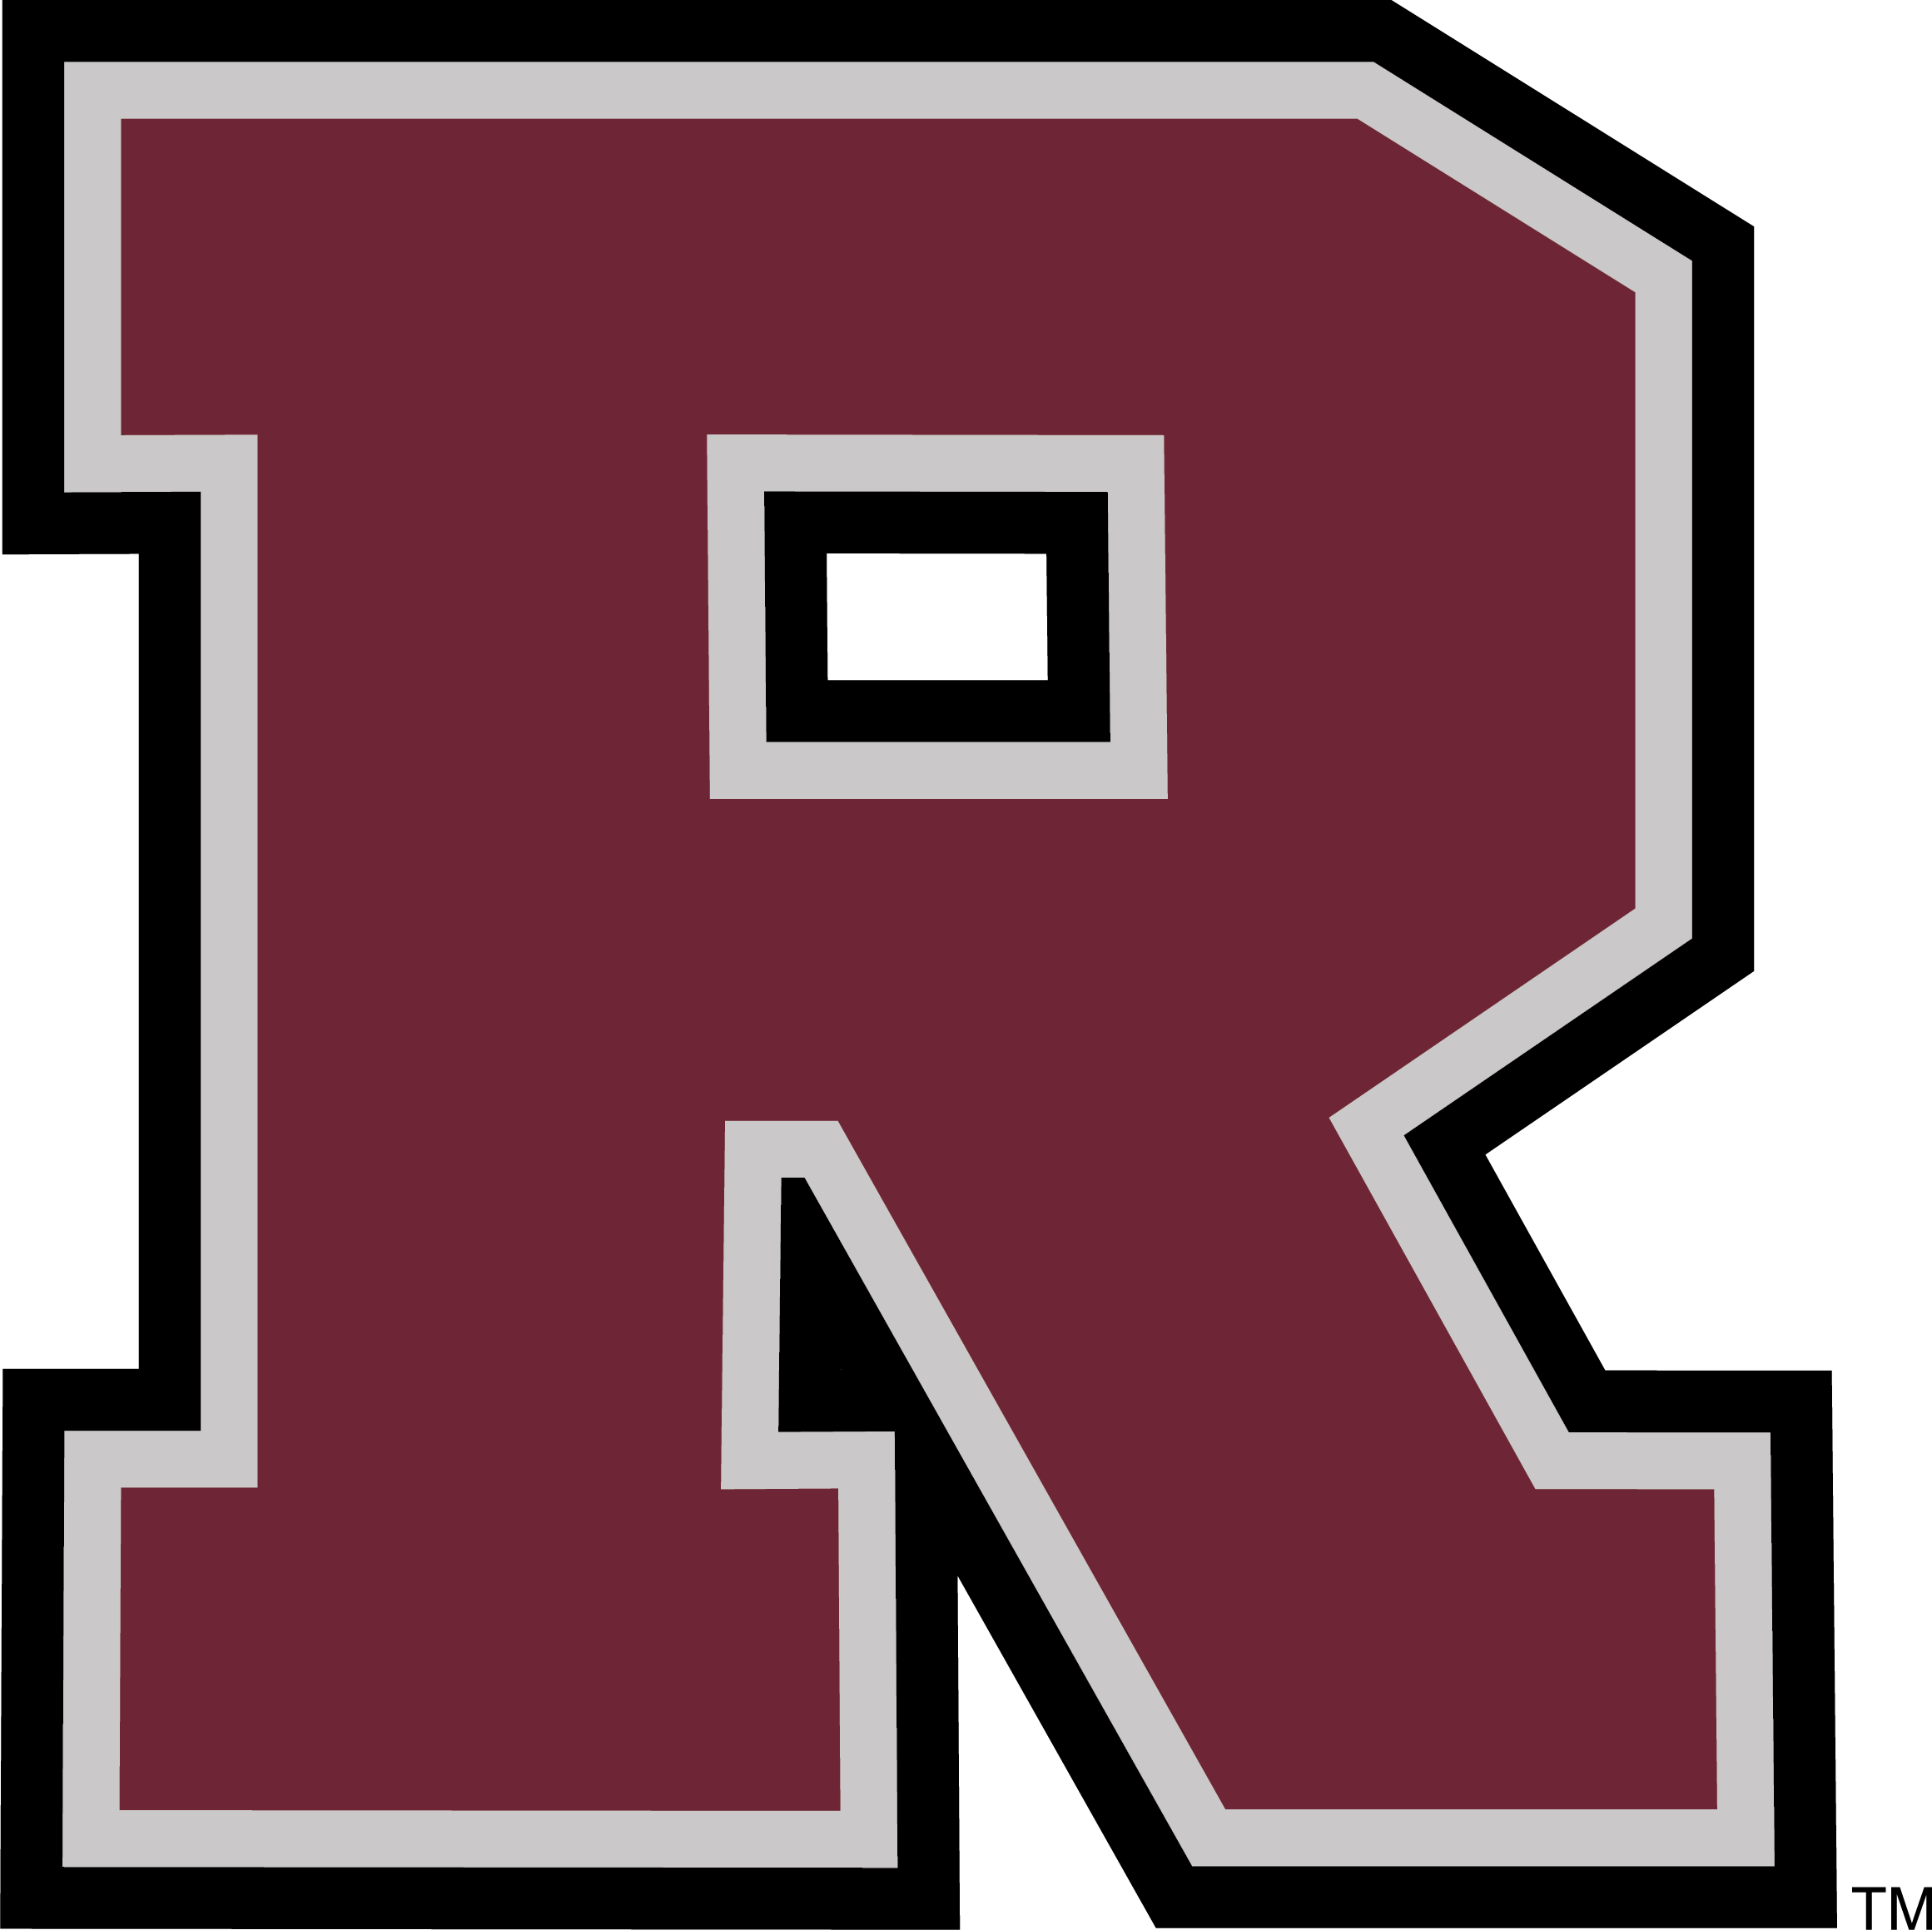 Rossford Exempted Village Schools